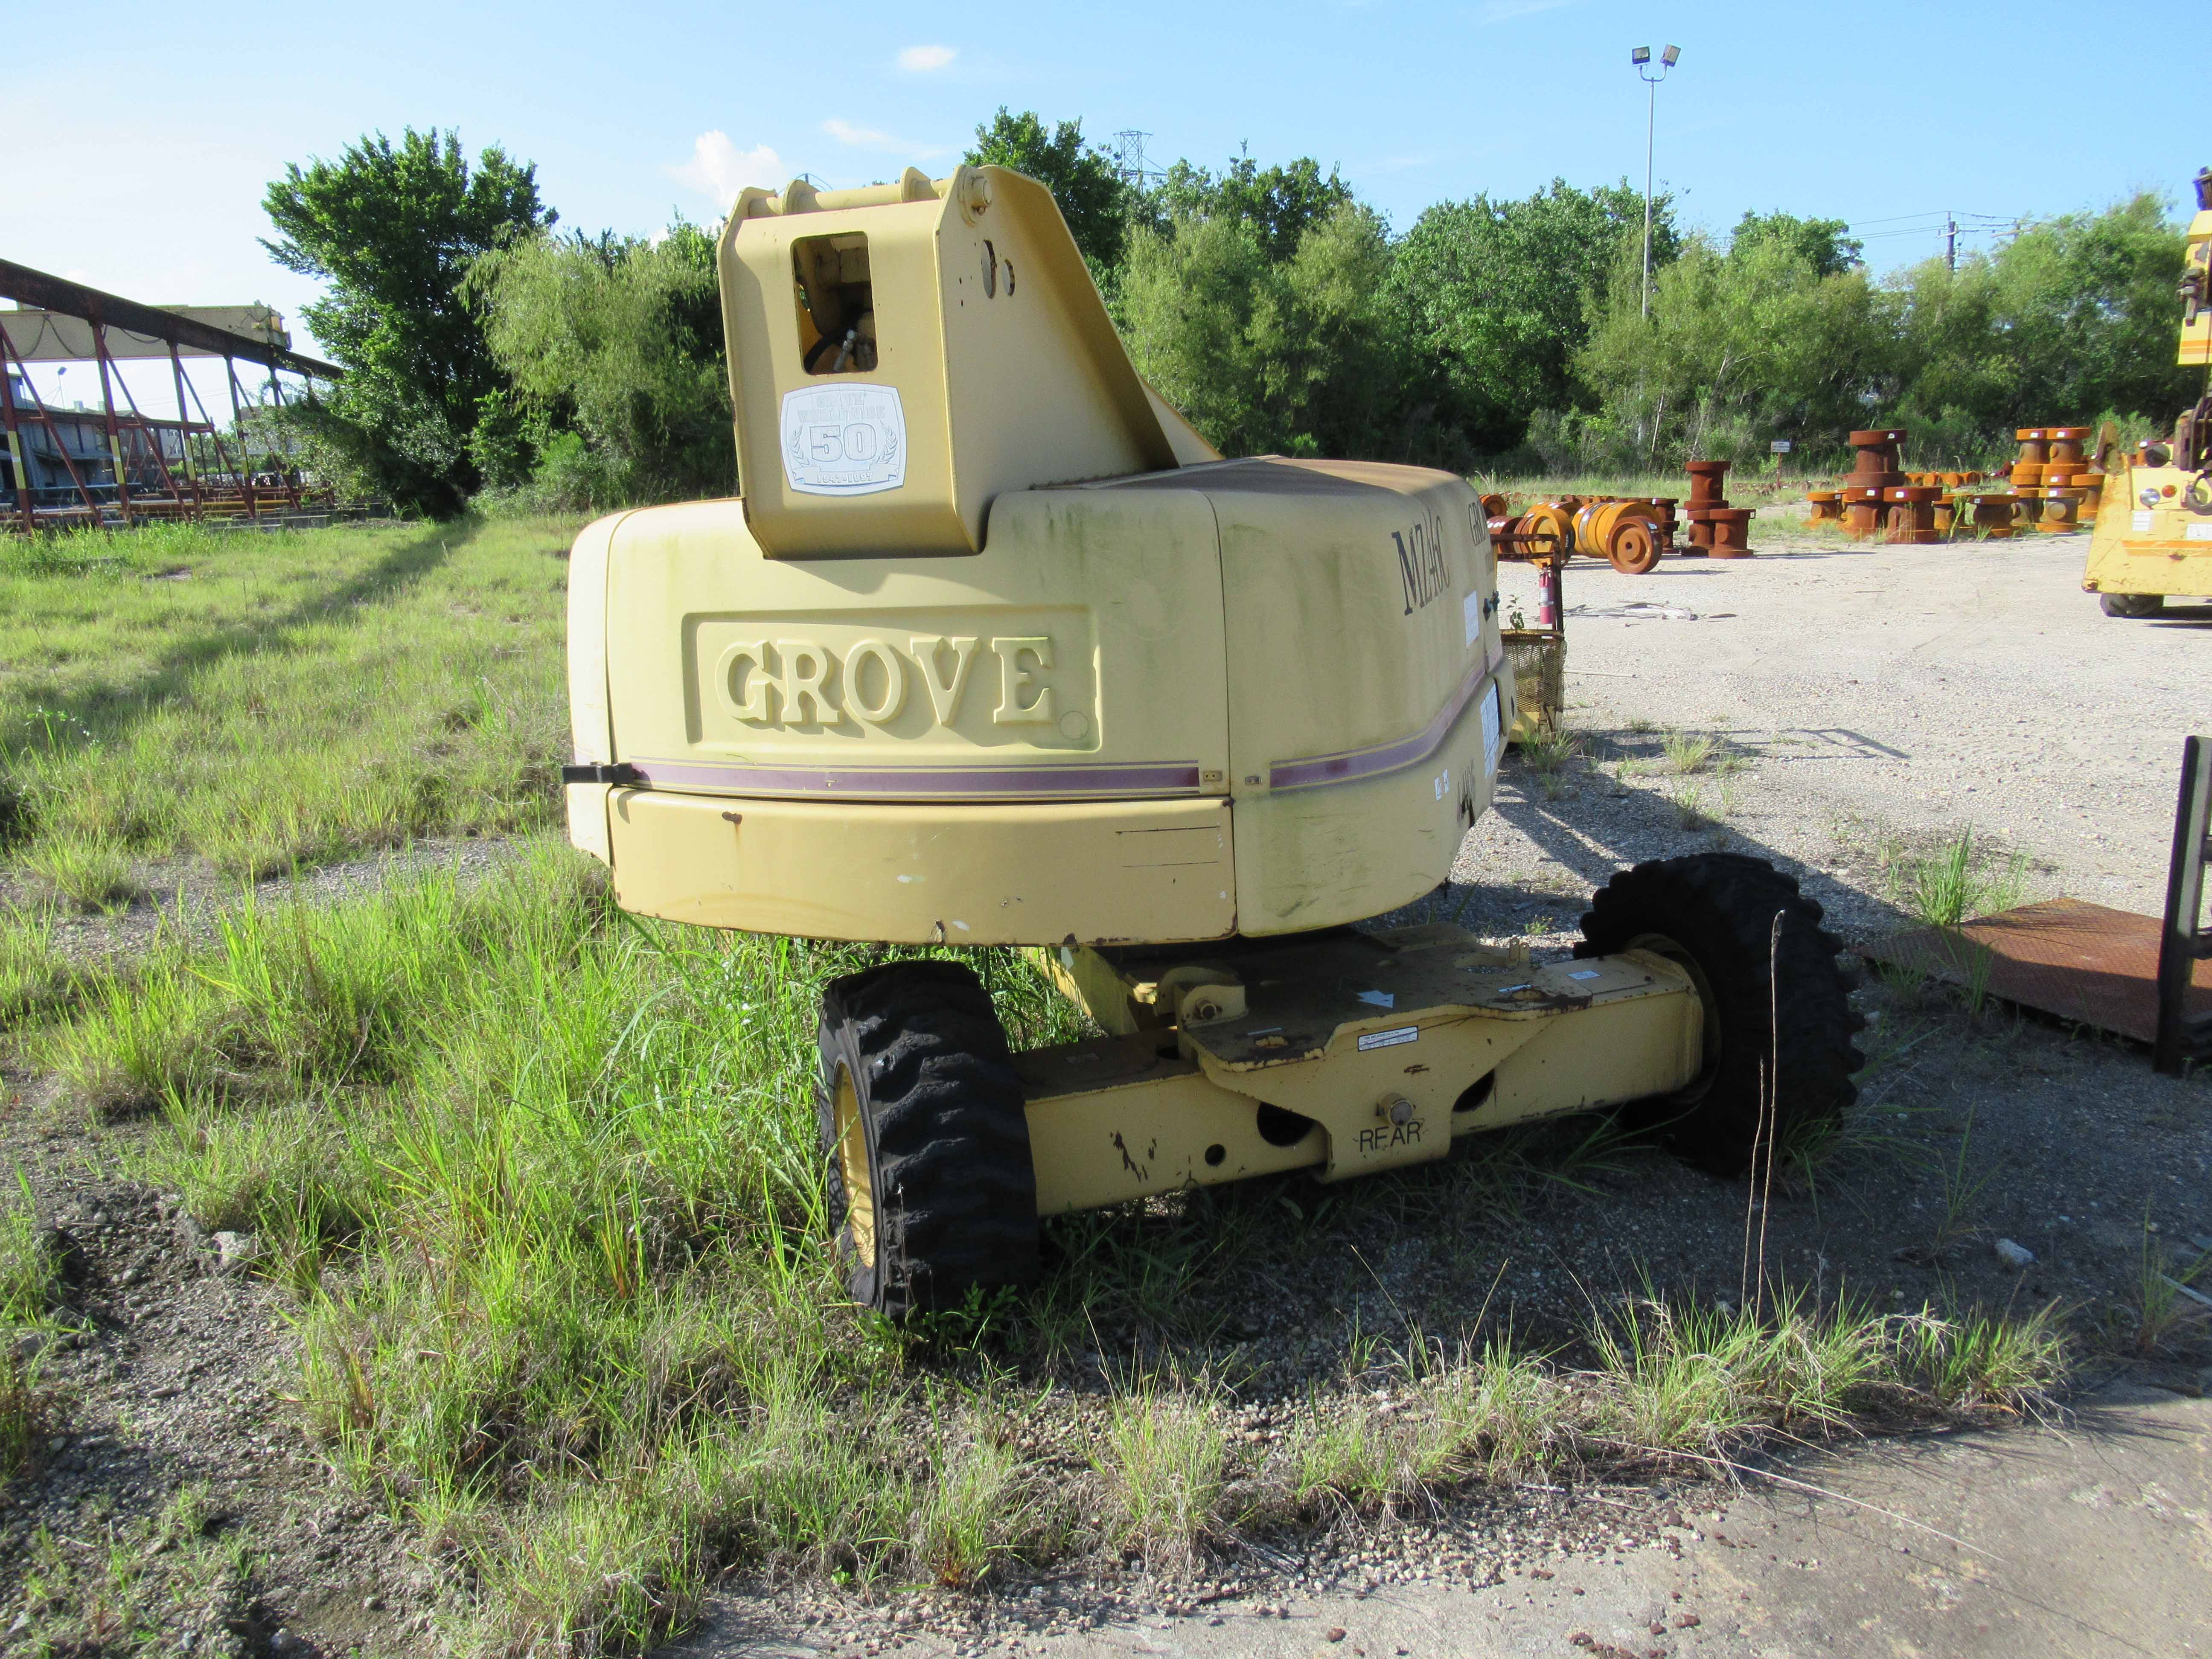 Lot 23 - GROVE MDL. MZ46C MANLIFT, new 1997, 40' max. travel height, 500 lbs. max load. Steel toe shoes,